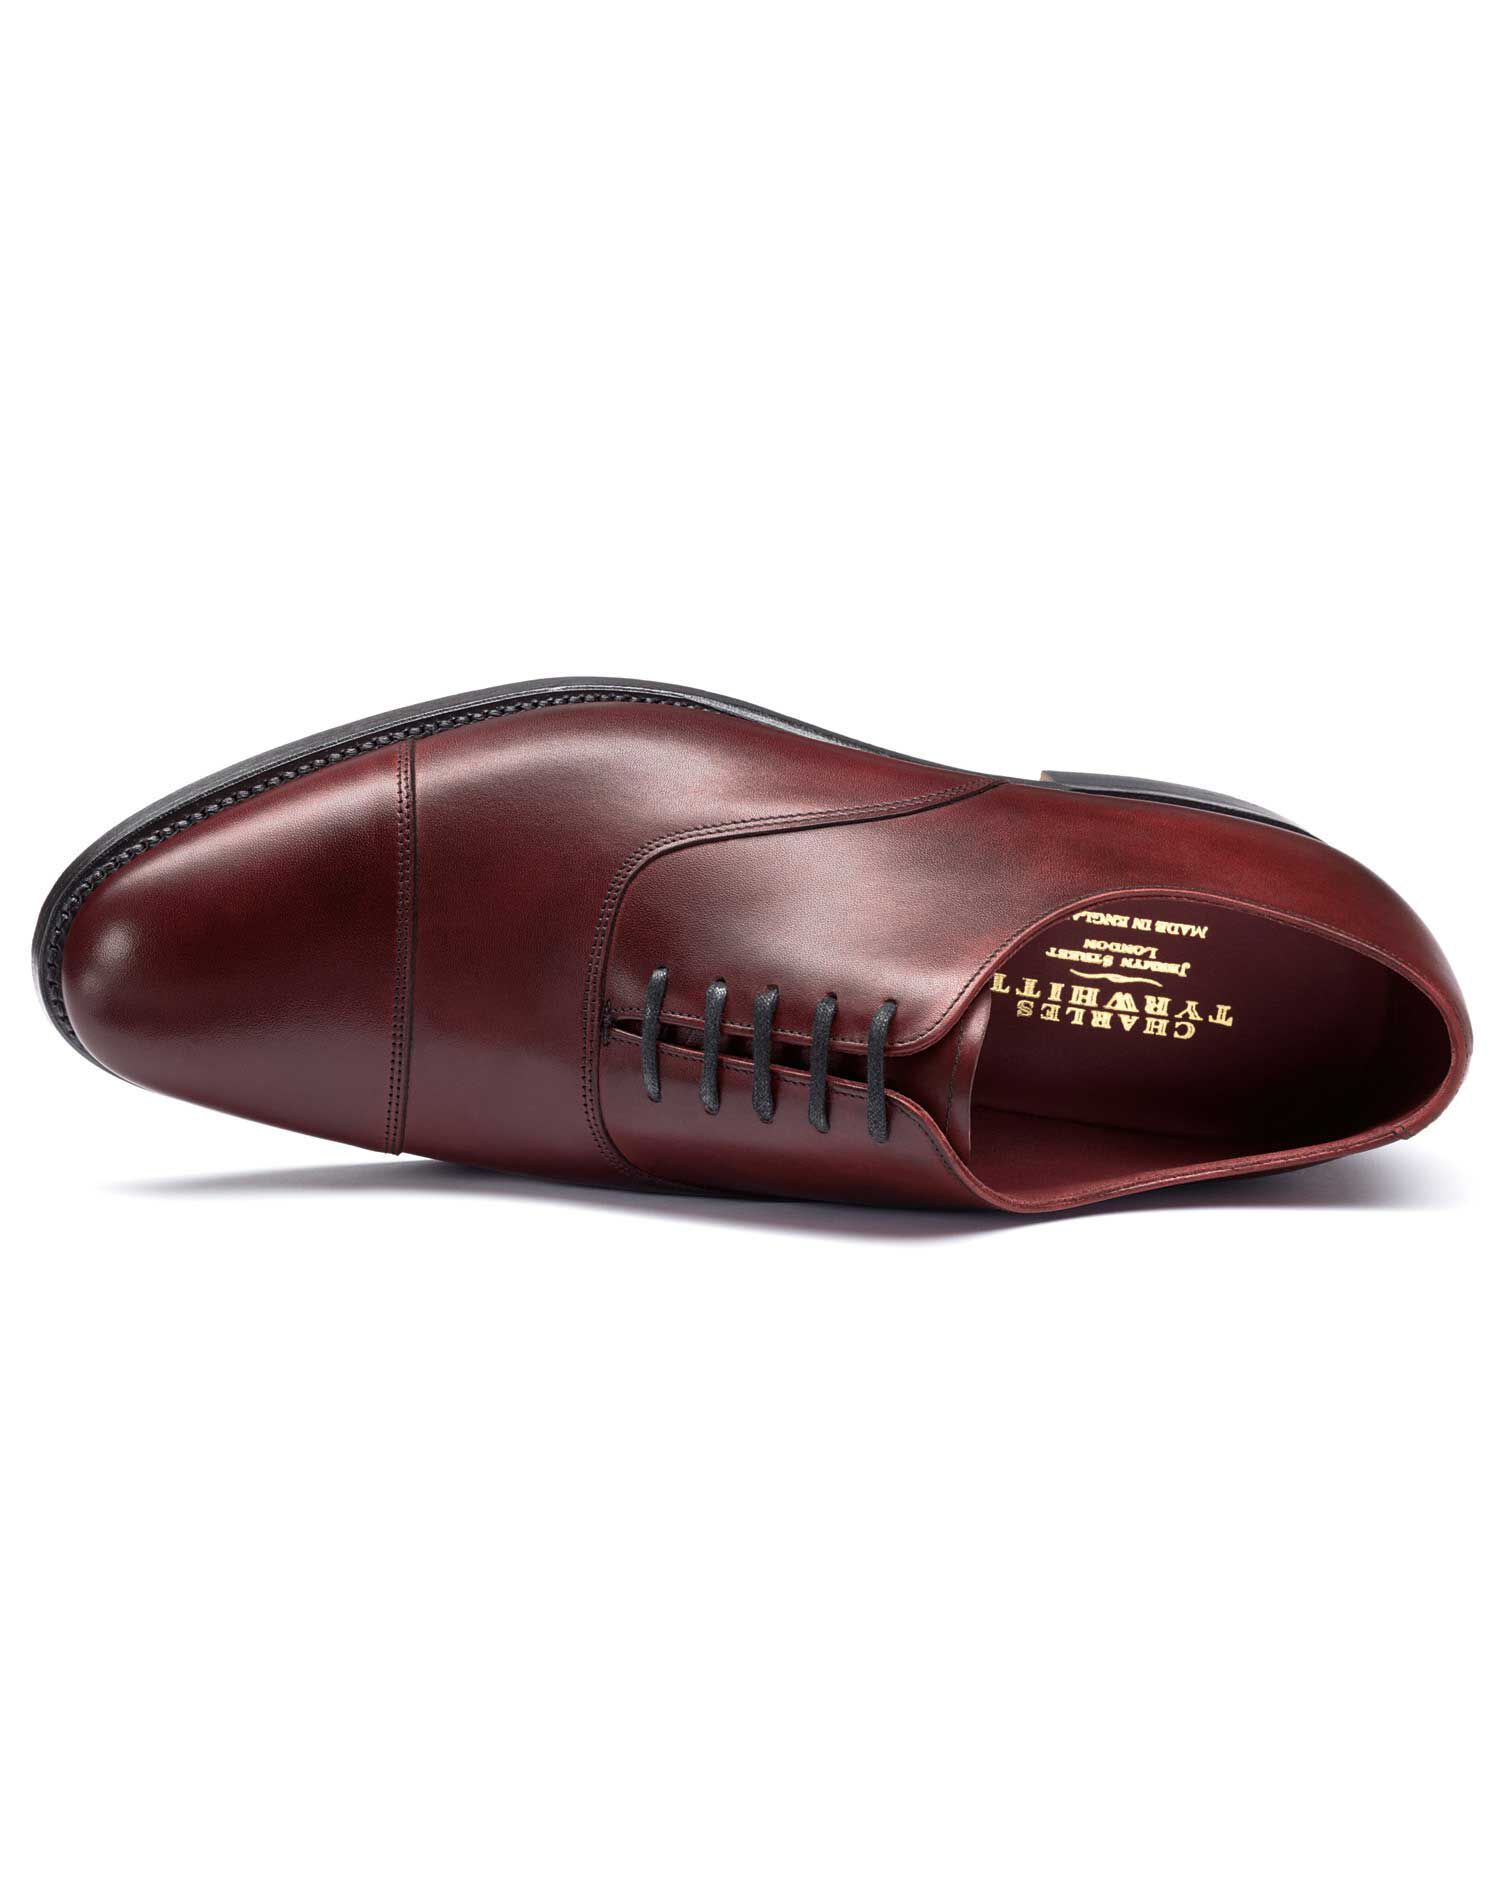 Burgundy Heathcote Calf Leather Toe Cap Oxford Shoes Size 8.5 by Charles Tyrwhitt